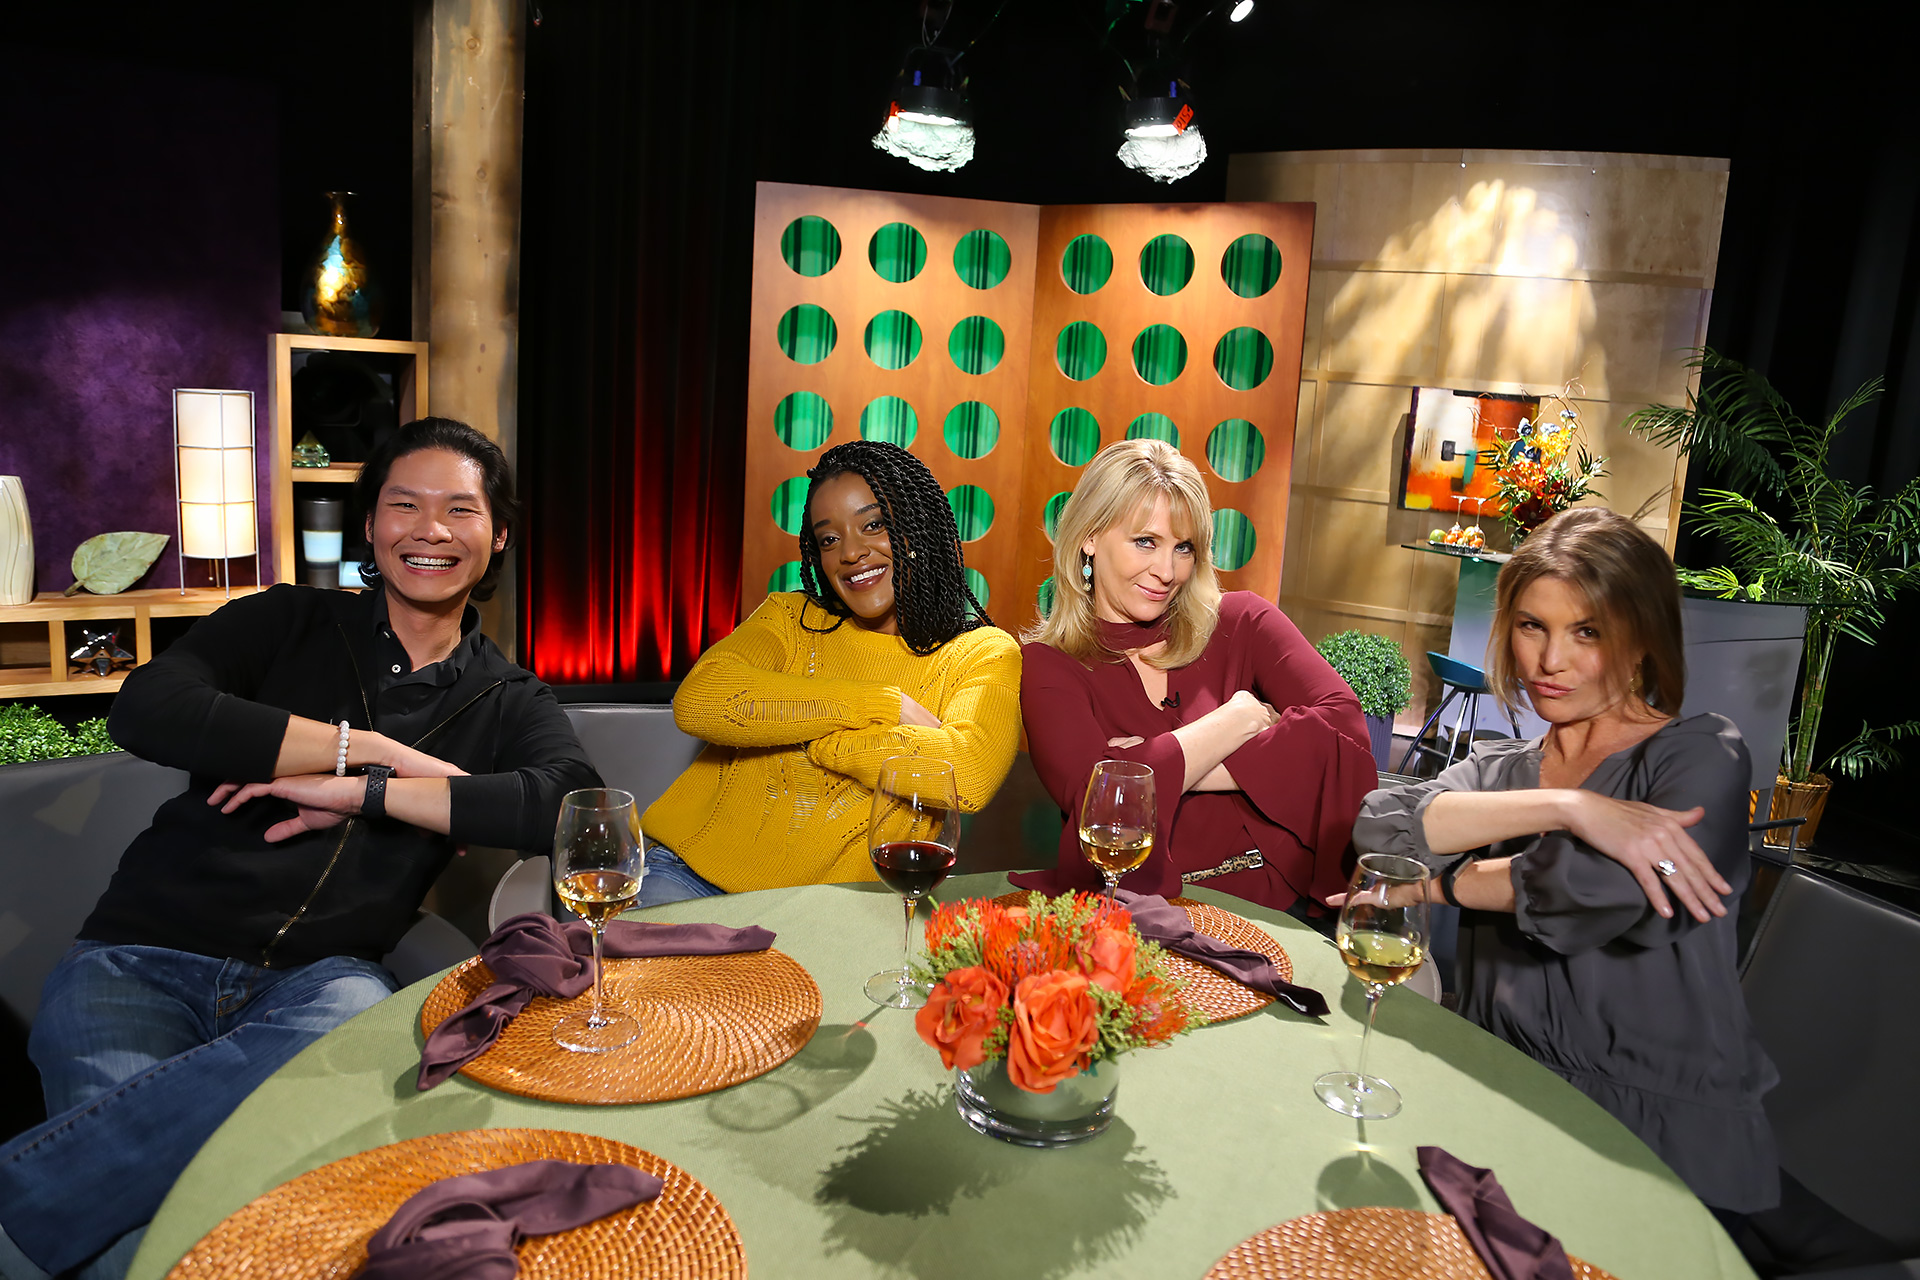 Host Leslie Sbrocco and guests having fun on the set of season 13 episode 8.